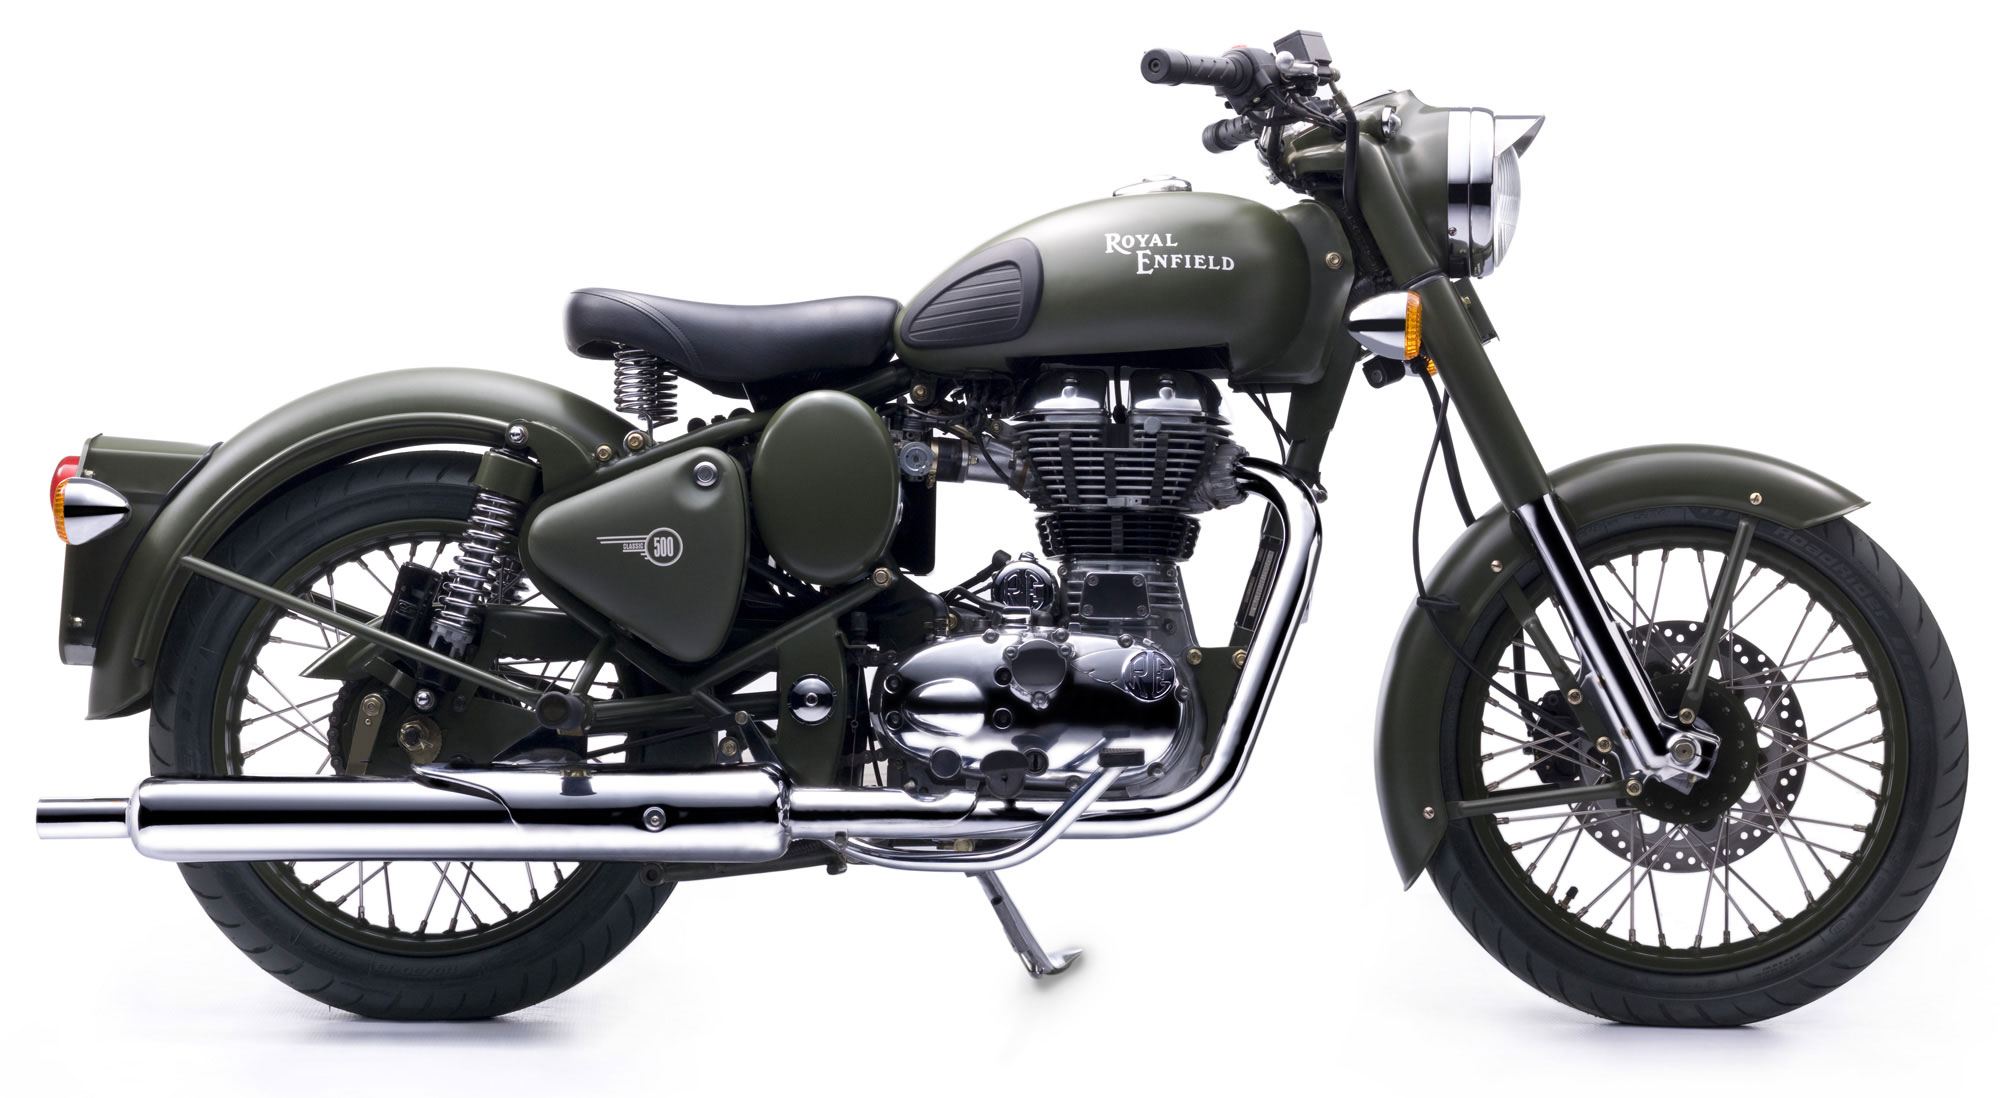 Royal Enfield Bullet 500 Army 2002 images #123419